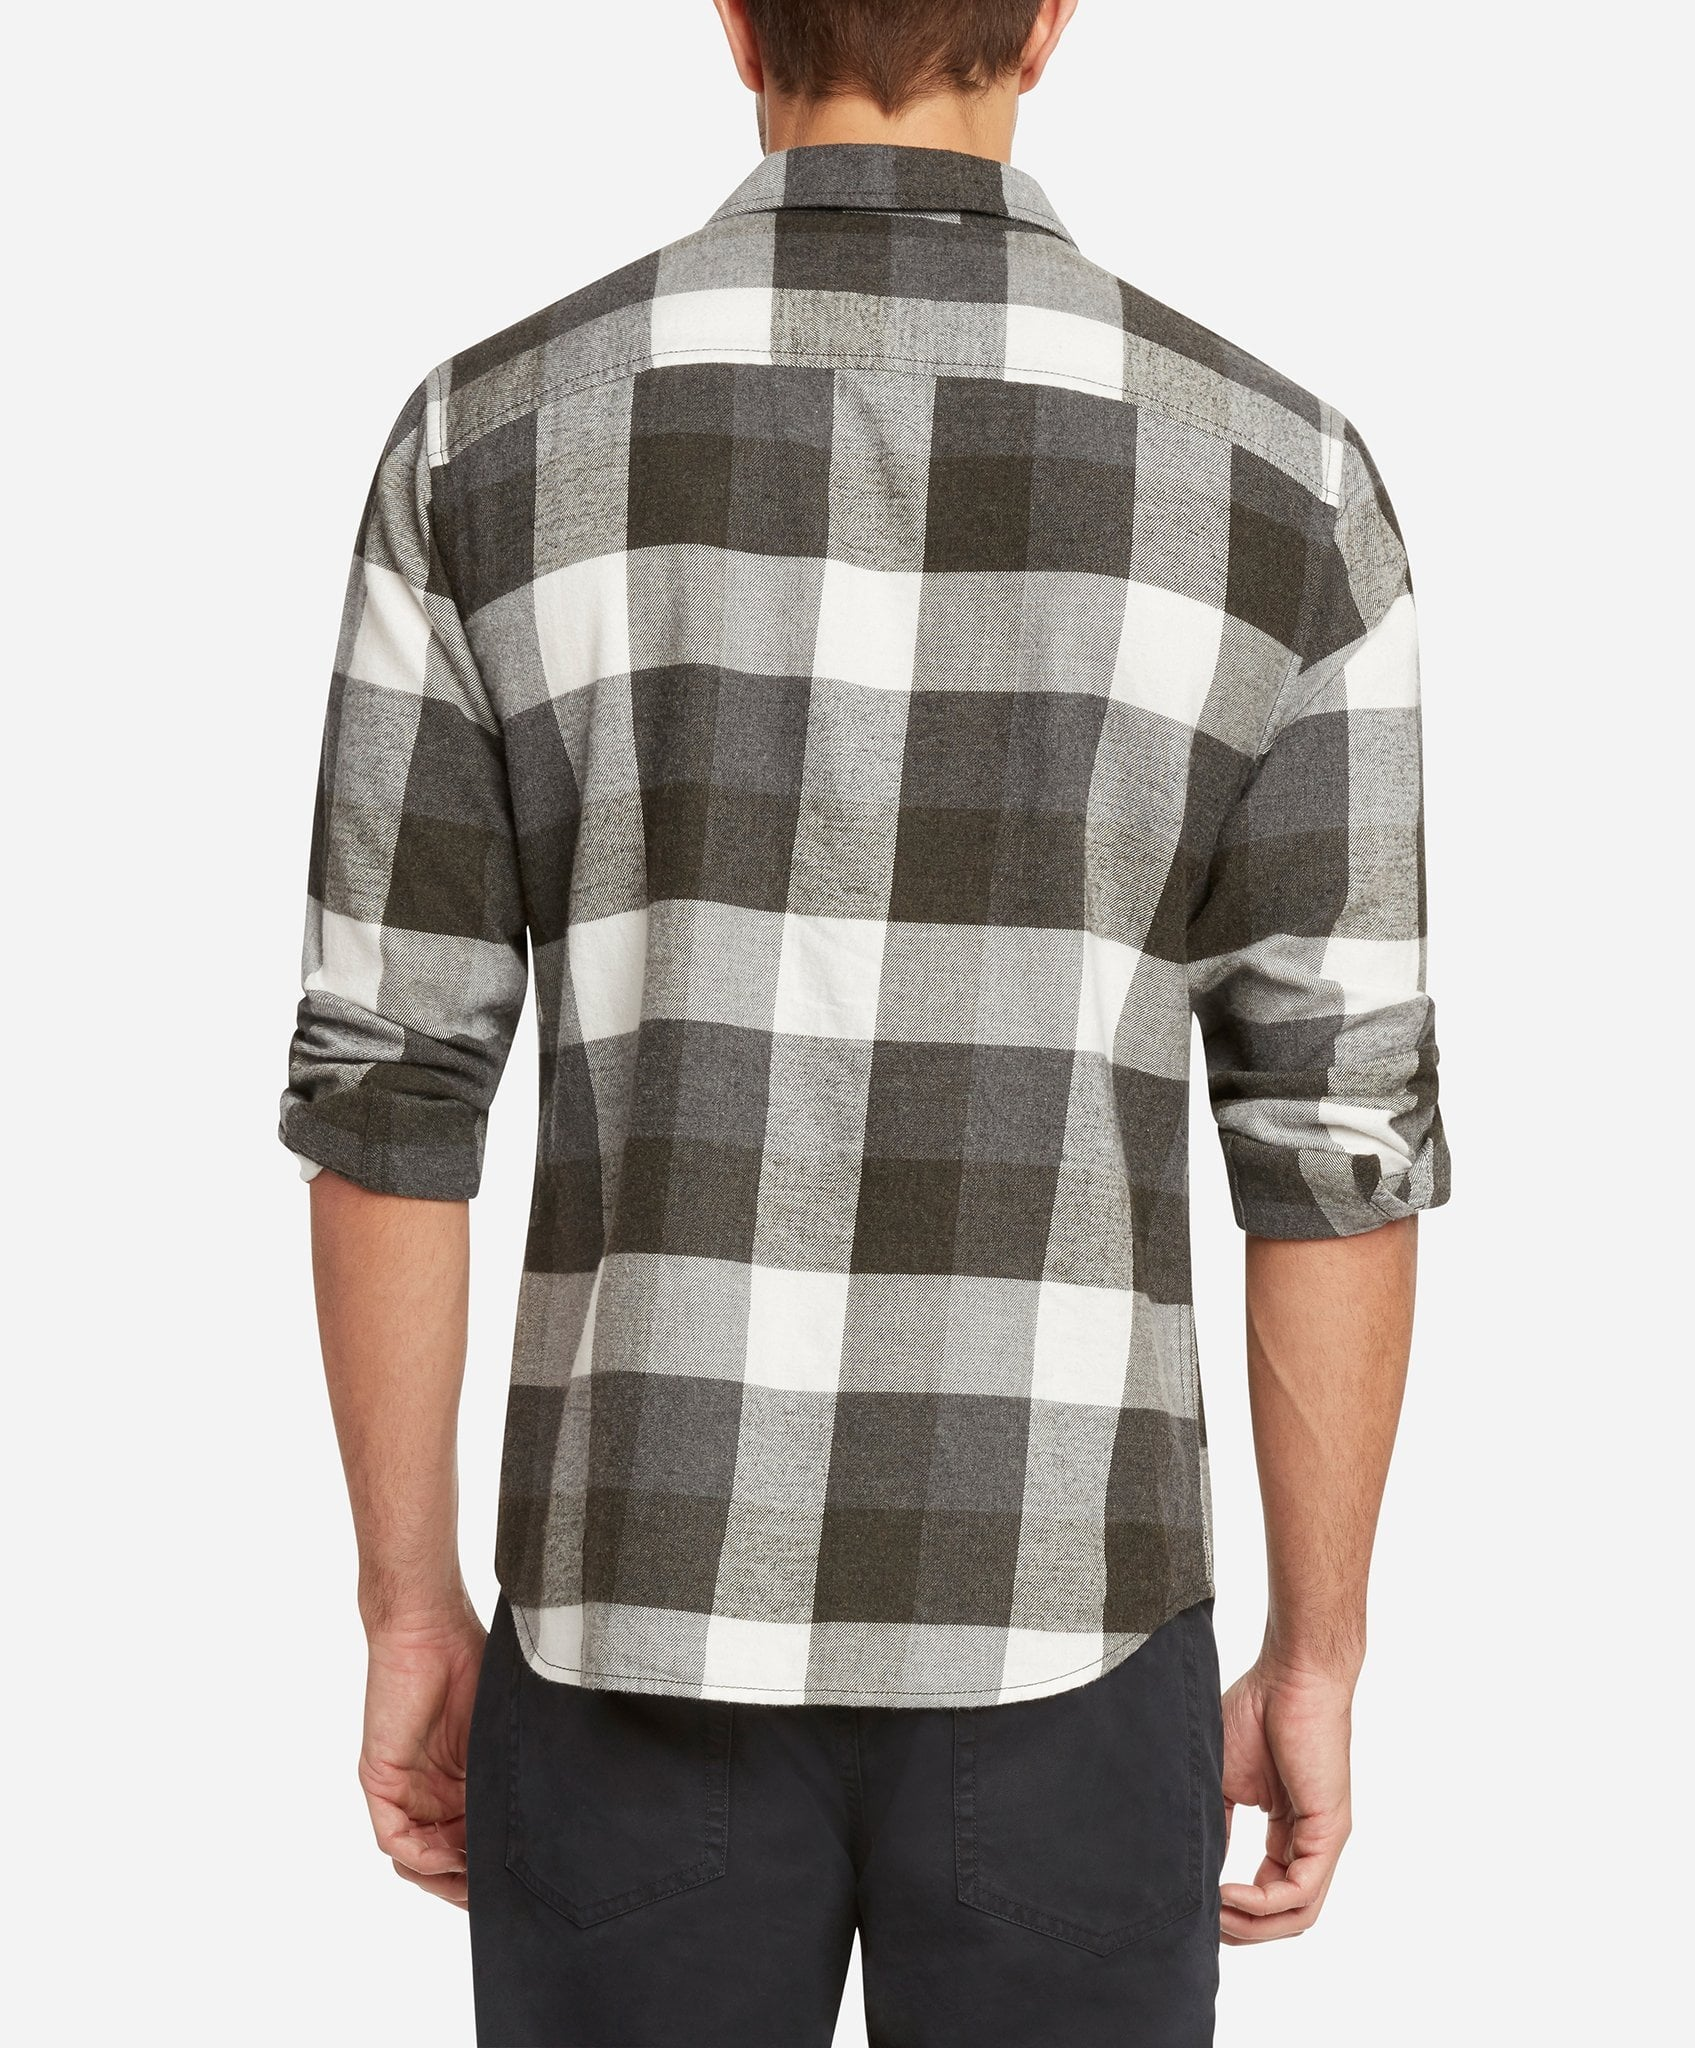 Sparrow Shirt - Heather Charcoal